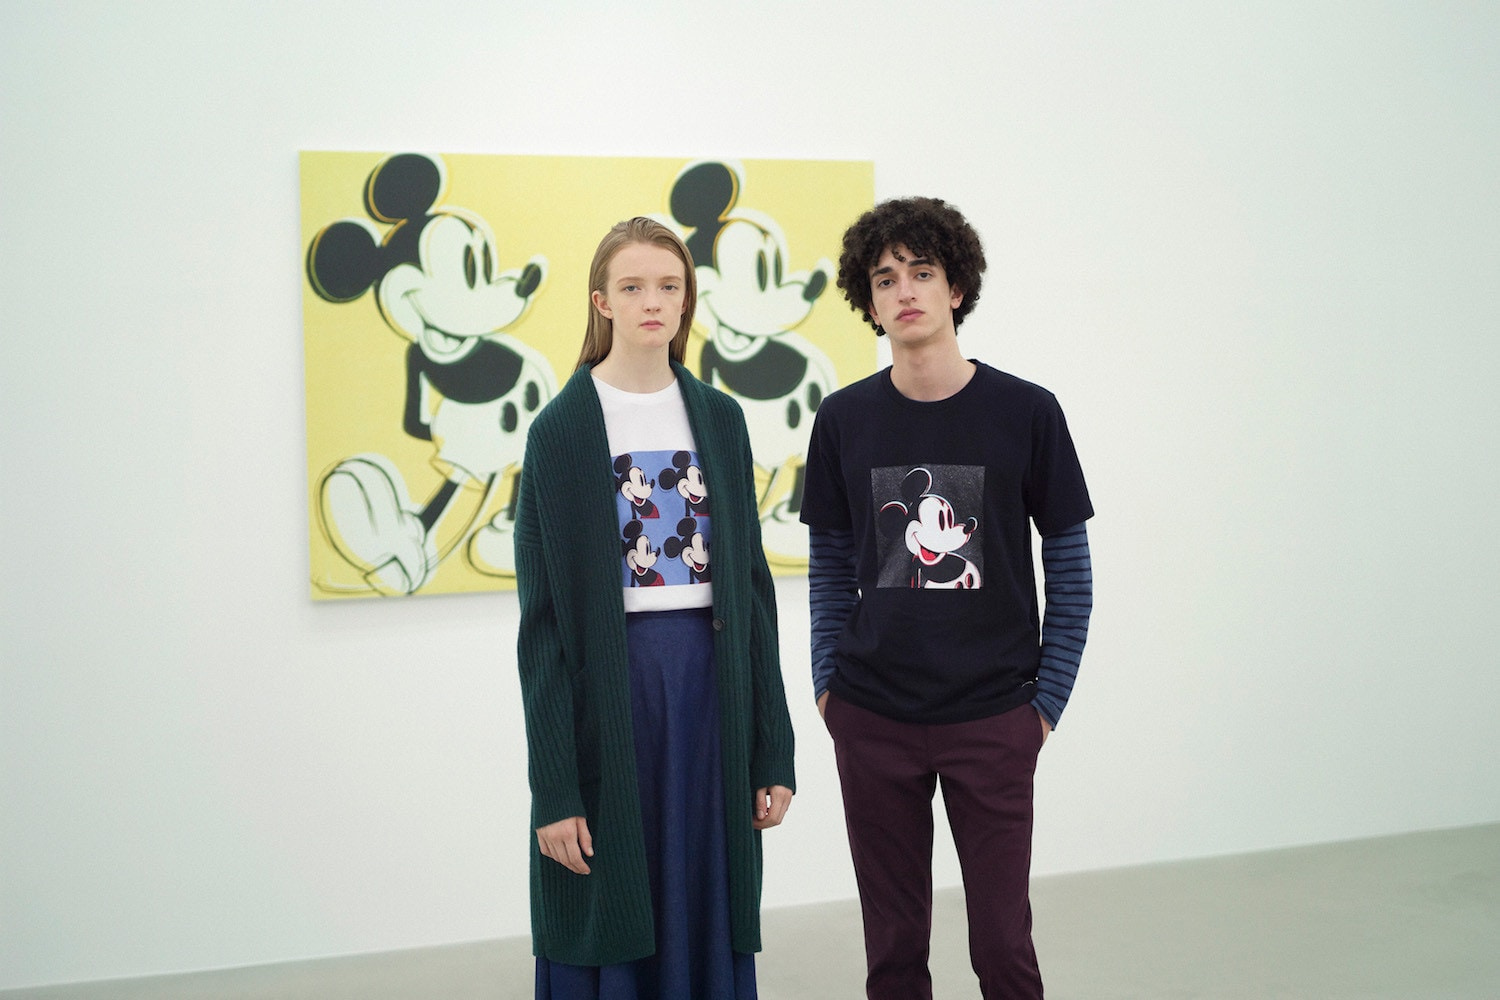 Models in art gallery, wearing clothes with Mickey Mouse prints from Andy Warhol's pop art piece